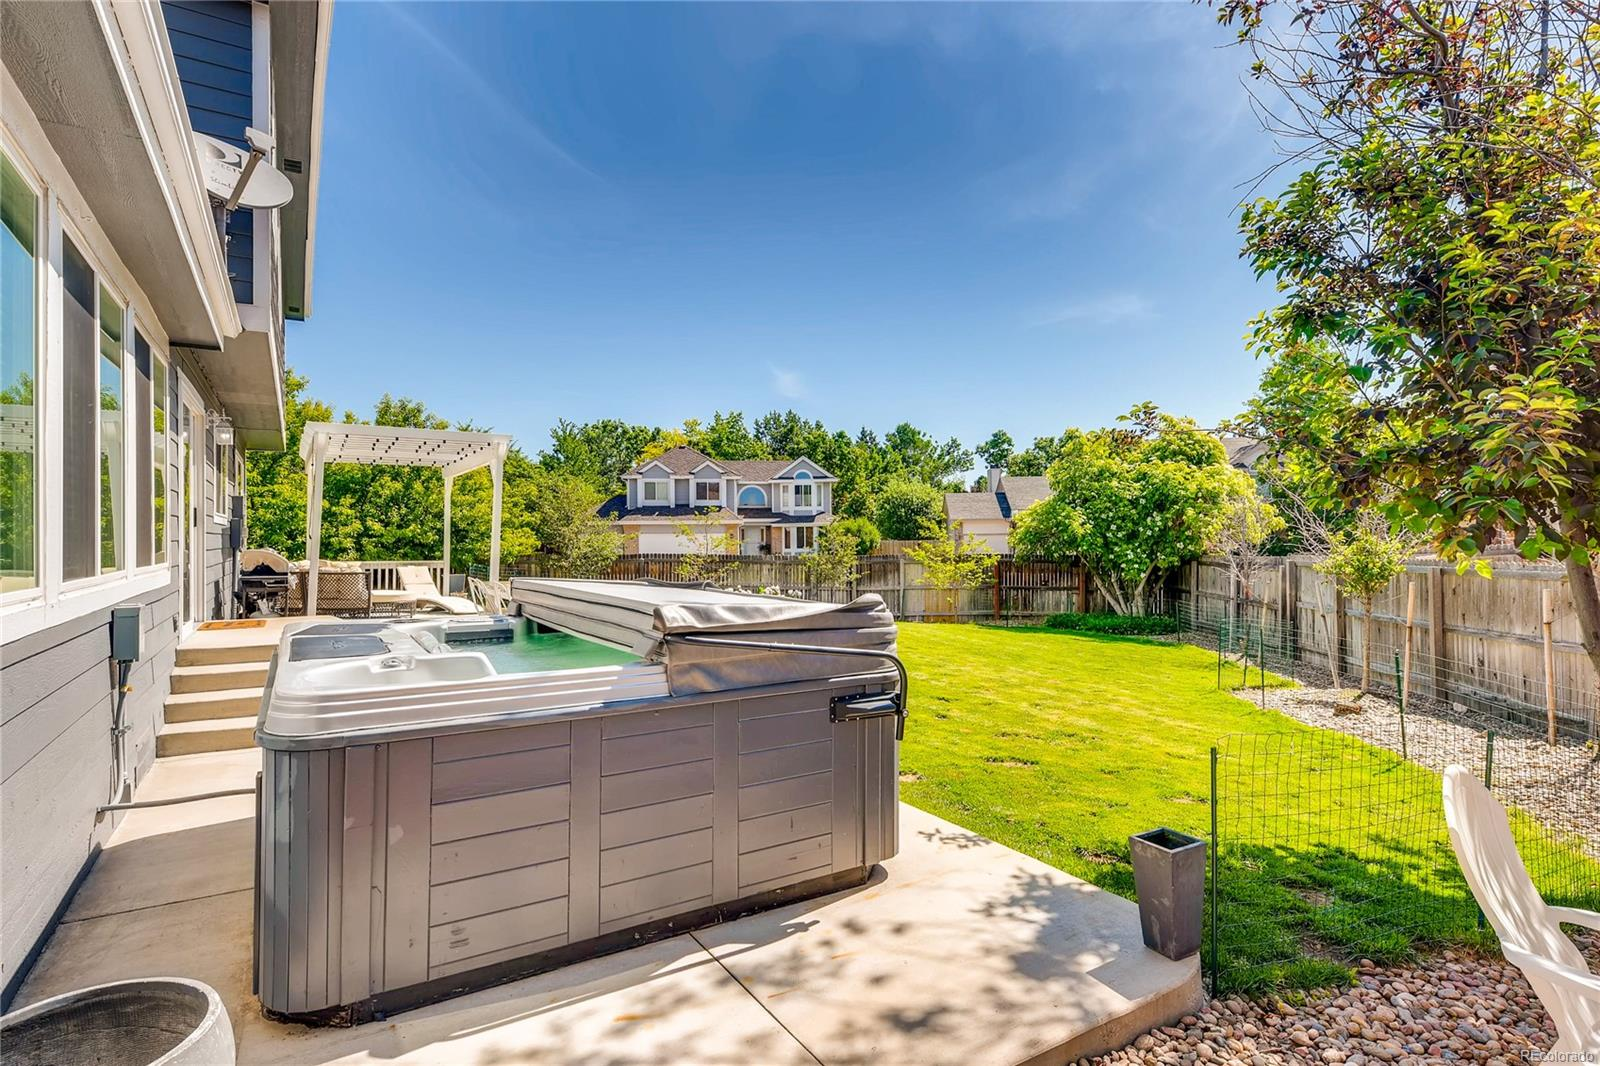 The back yard is a wonderful place to unwind, relax and gather.  Picture relaxing in this hot tub after a hard days work!